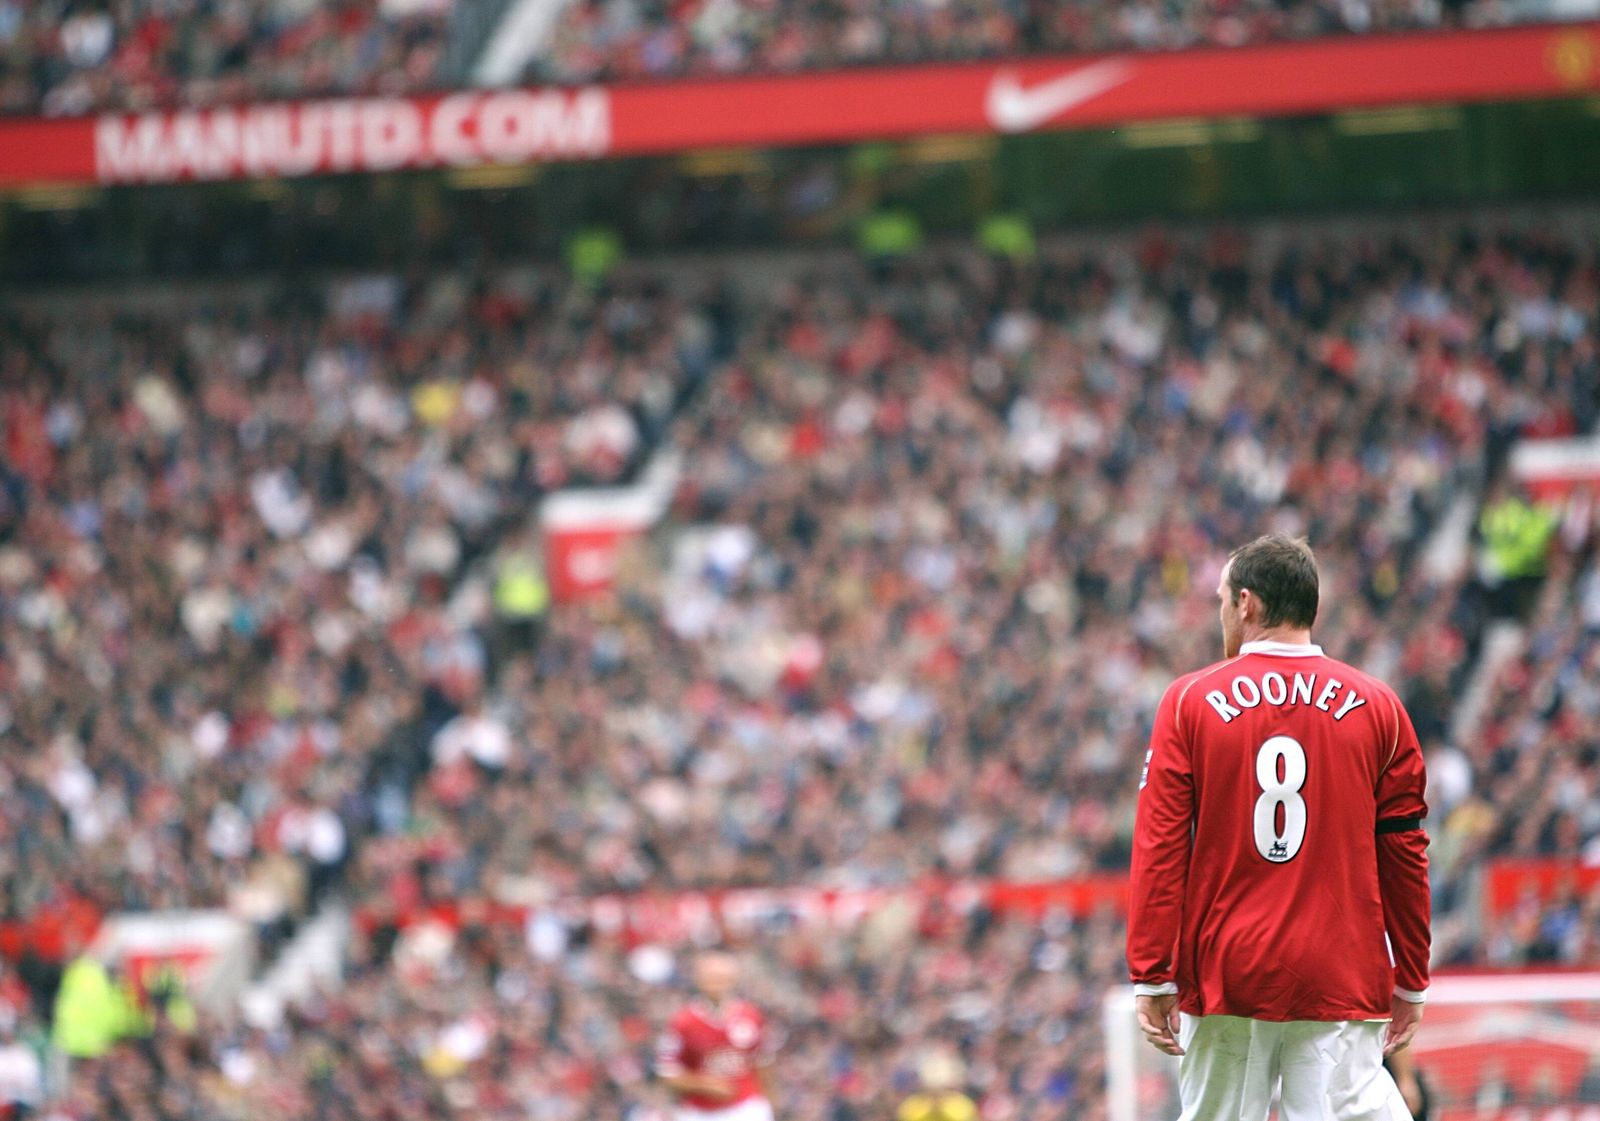 Wayne Rooney File Photos File photo dated 20-08-2006 of Manchester United, ManU s Wayne Rooney FILE PHOTO PUBLICATIONxIN